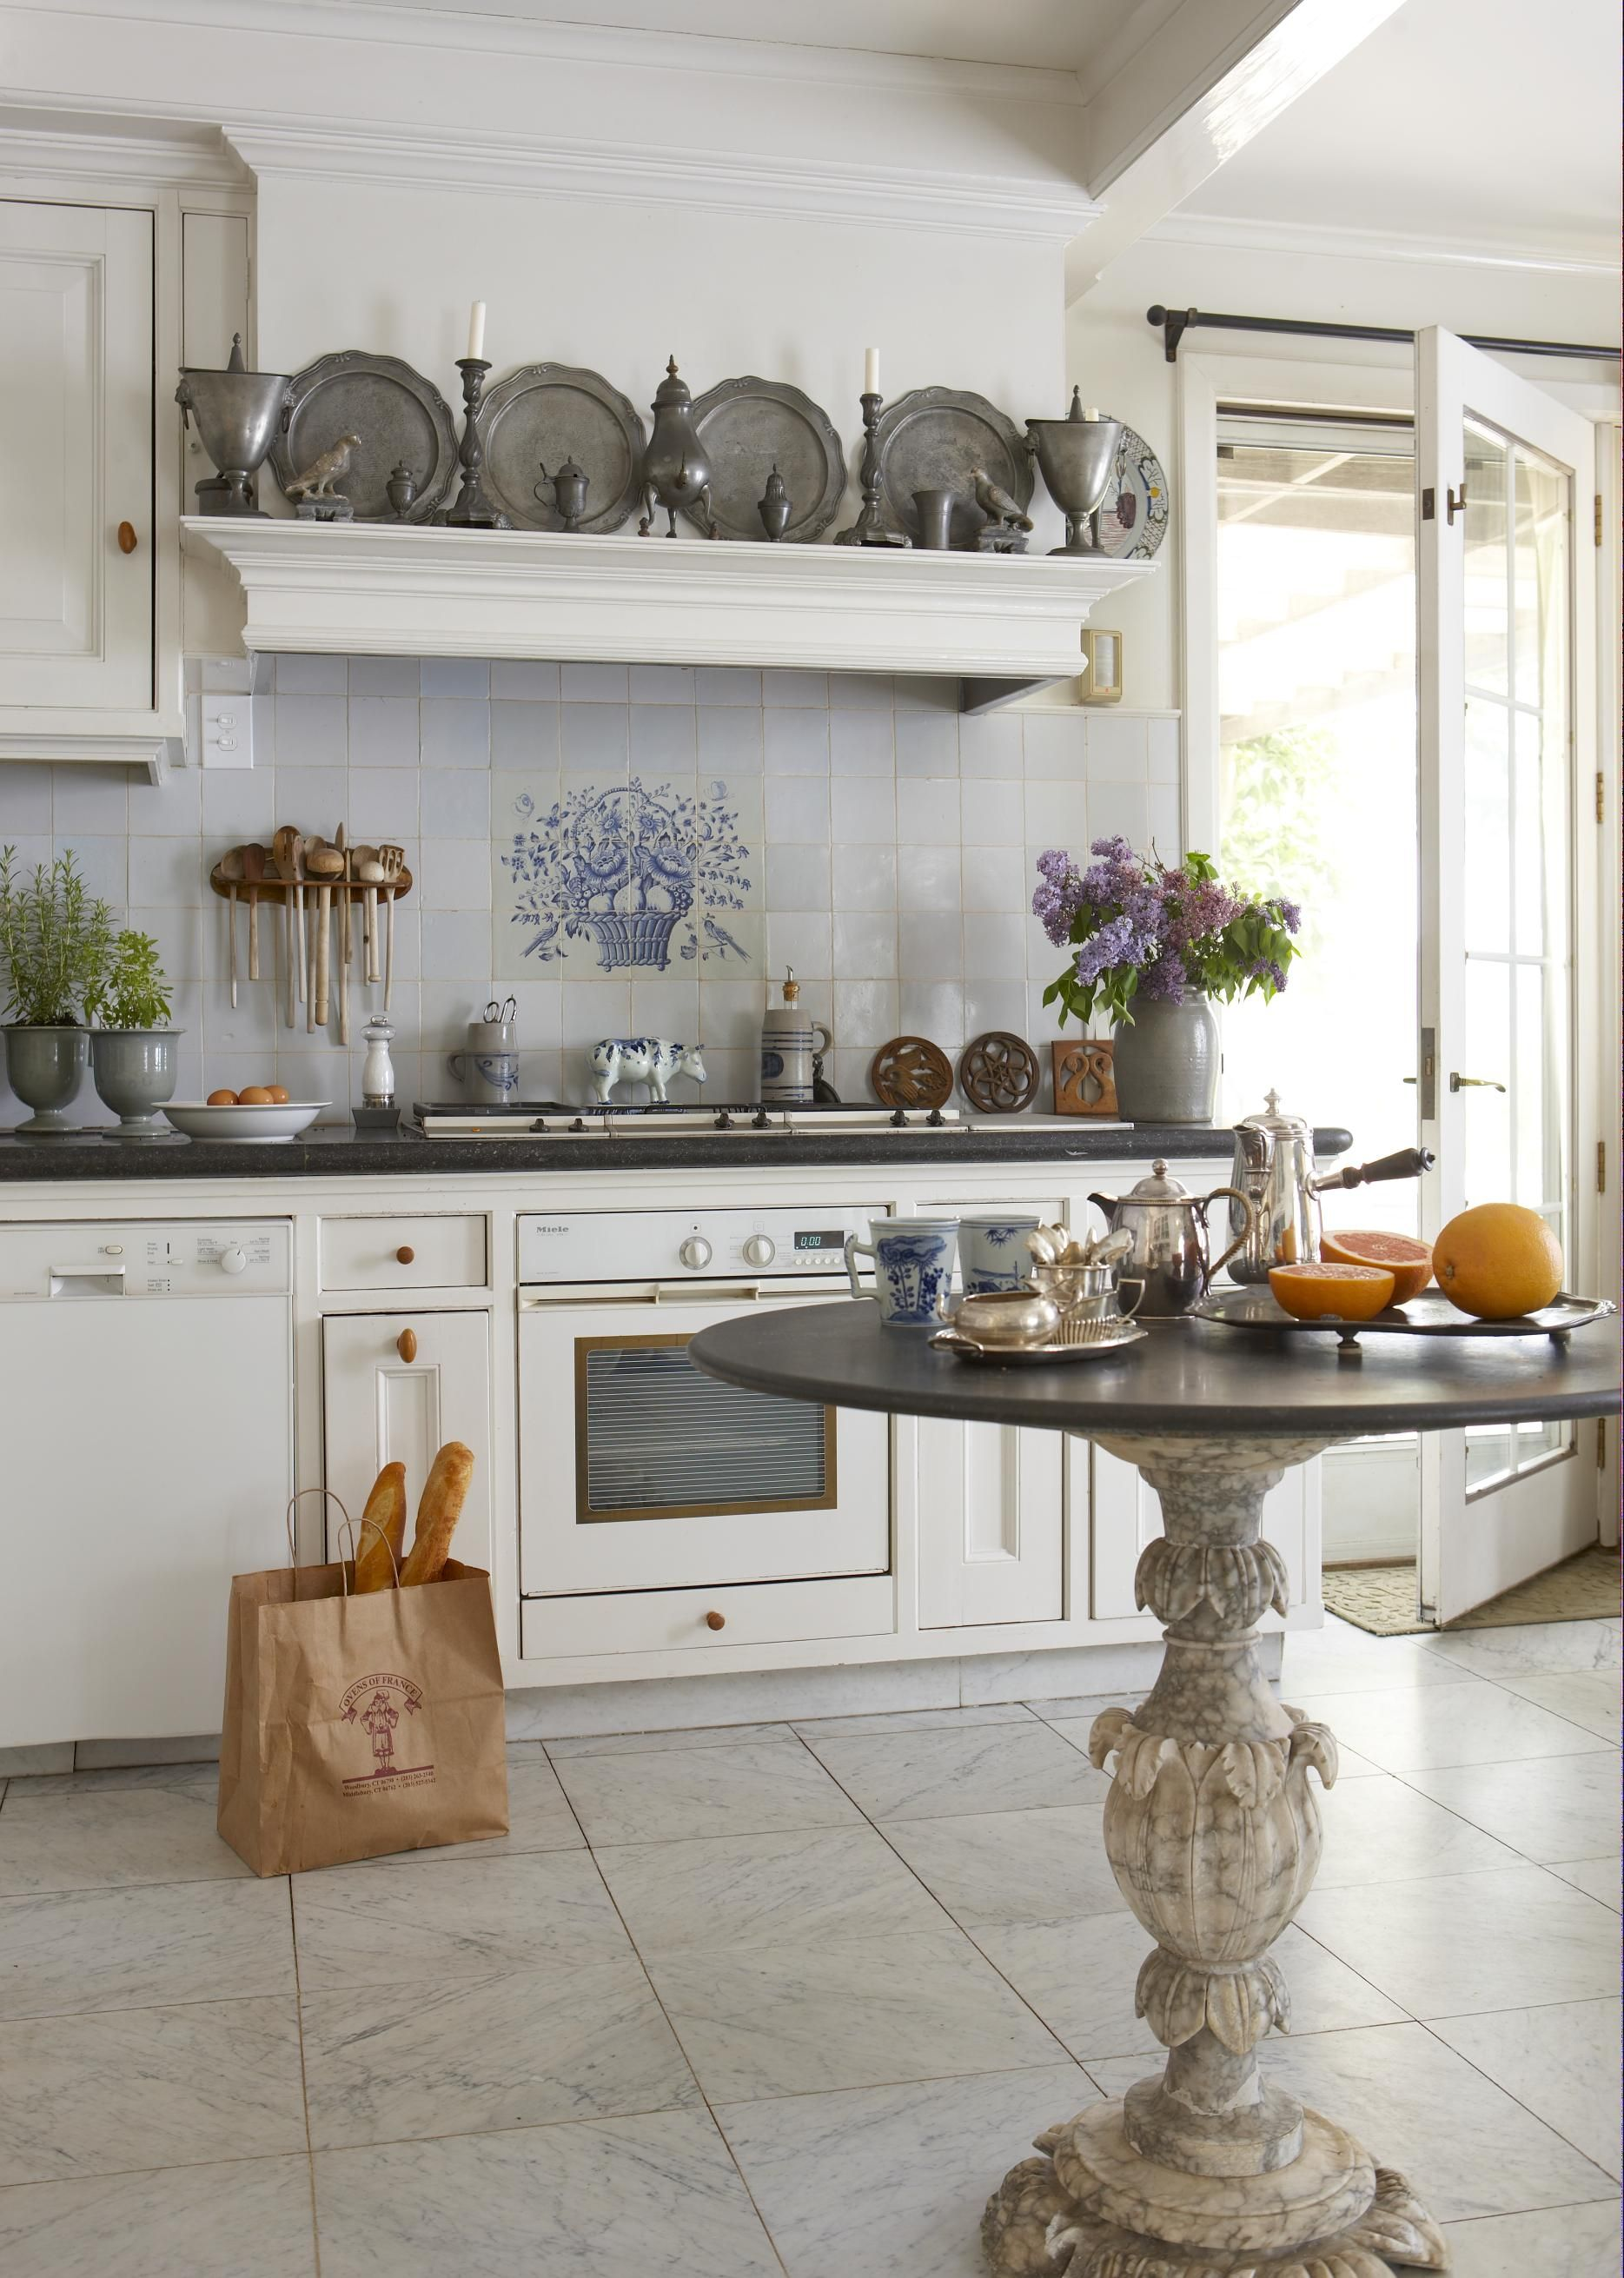 P14 Fabulous Country French Kitchens To Get Your Design Wheels Awesome French Kitchen Design Decorating Inspiration